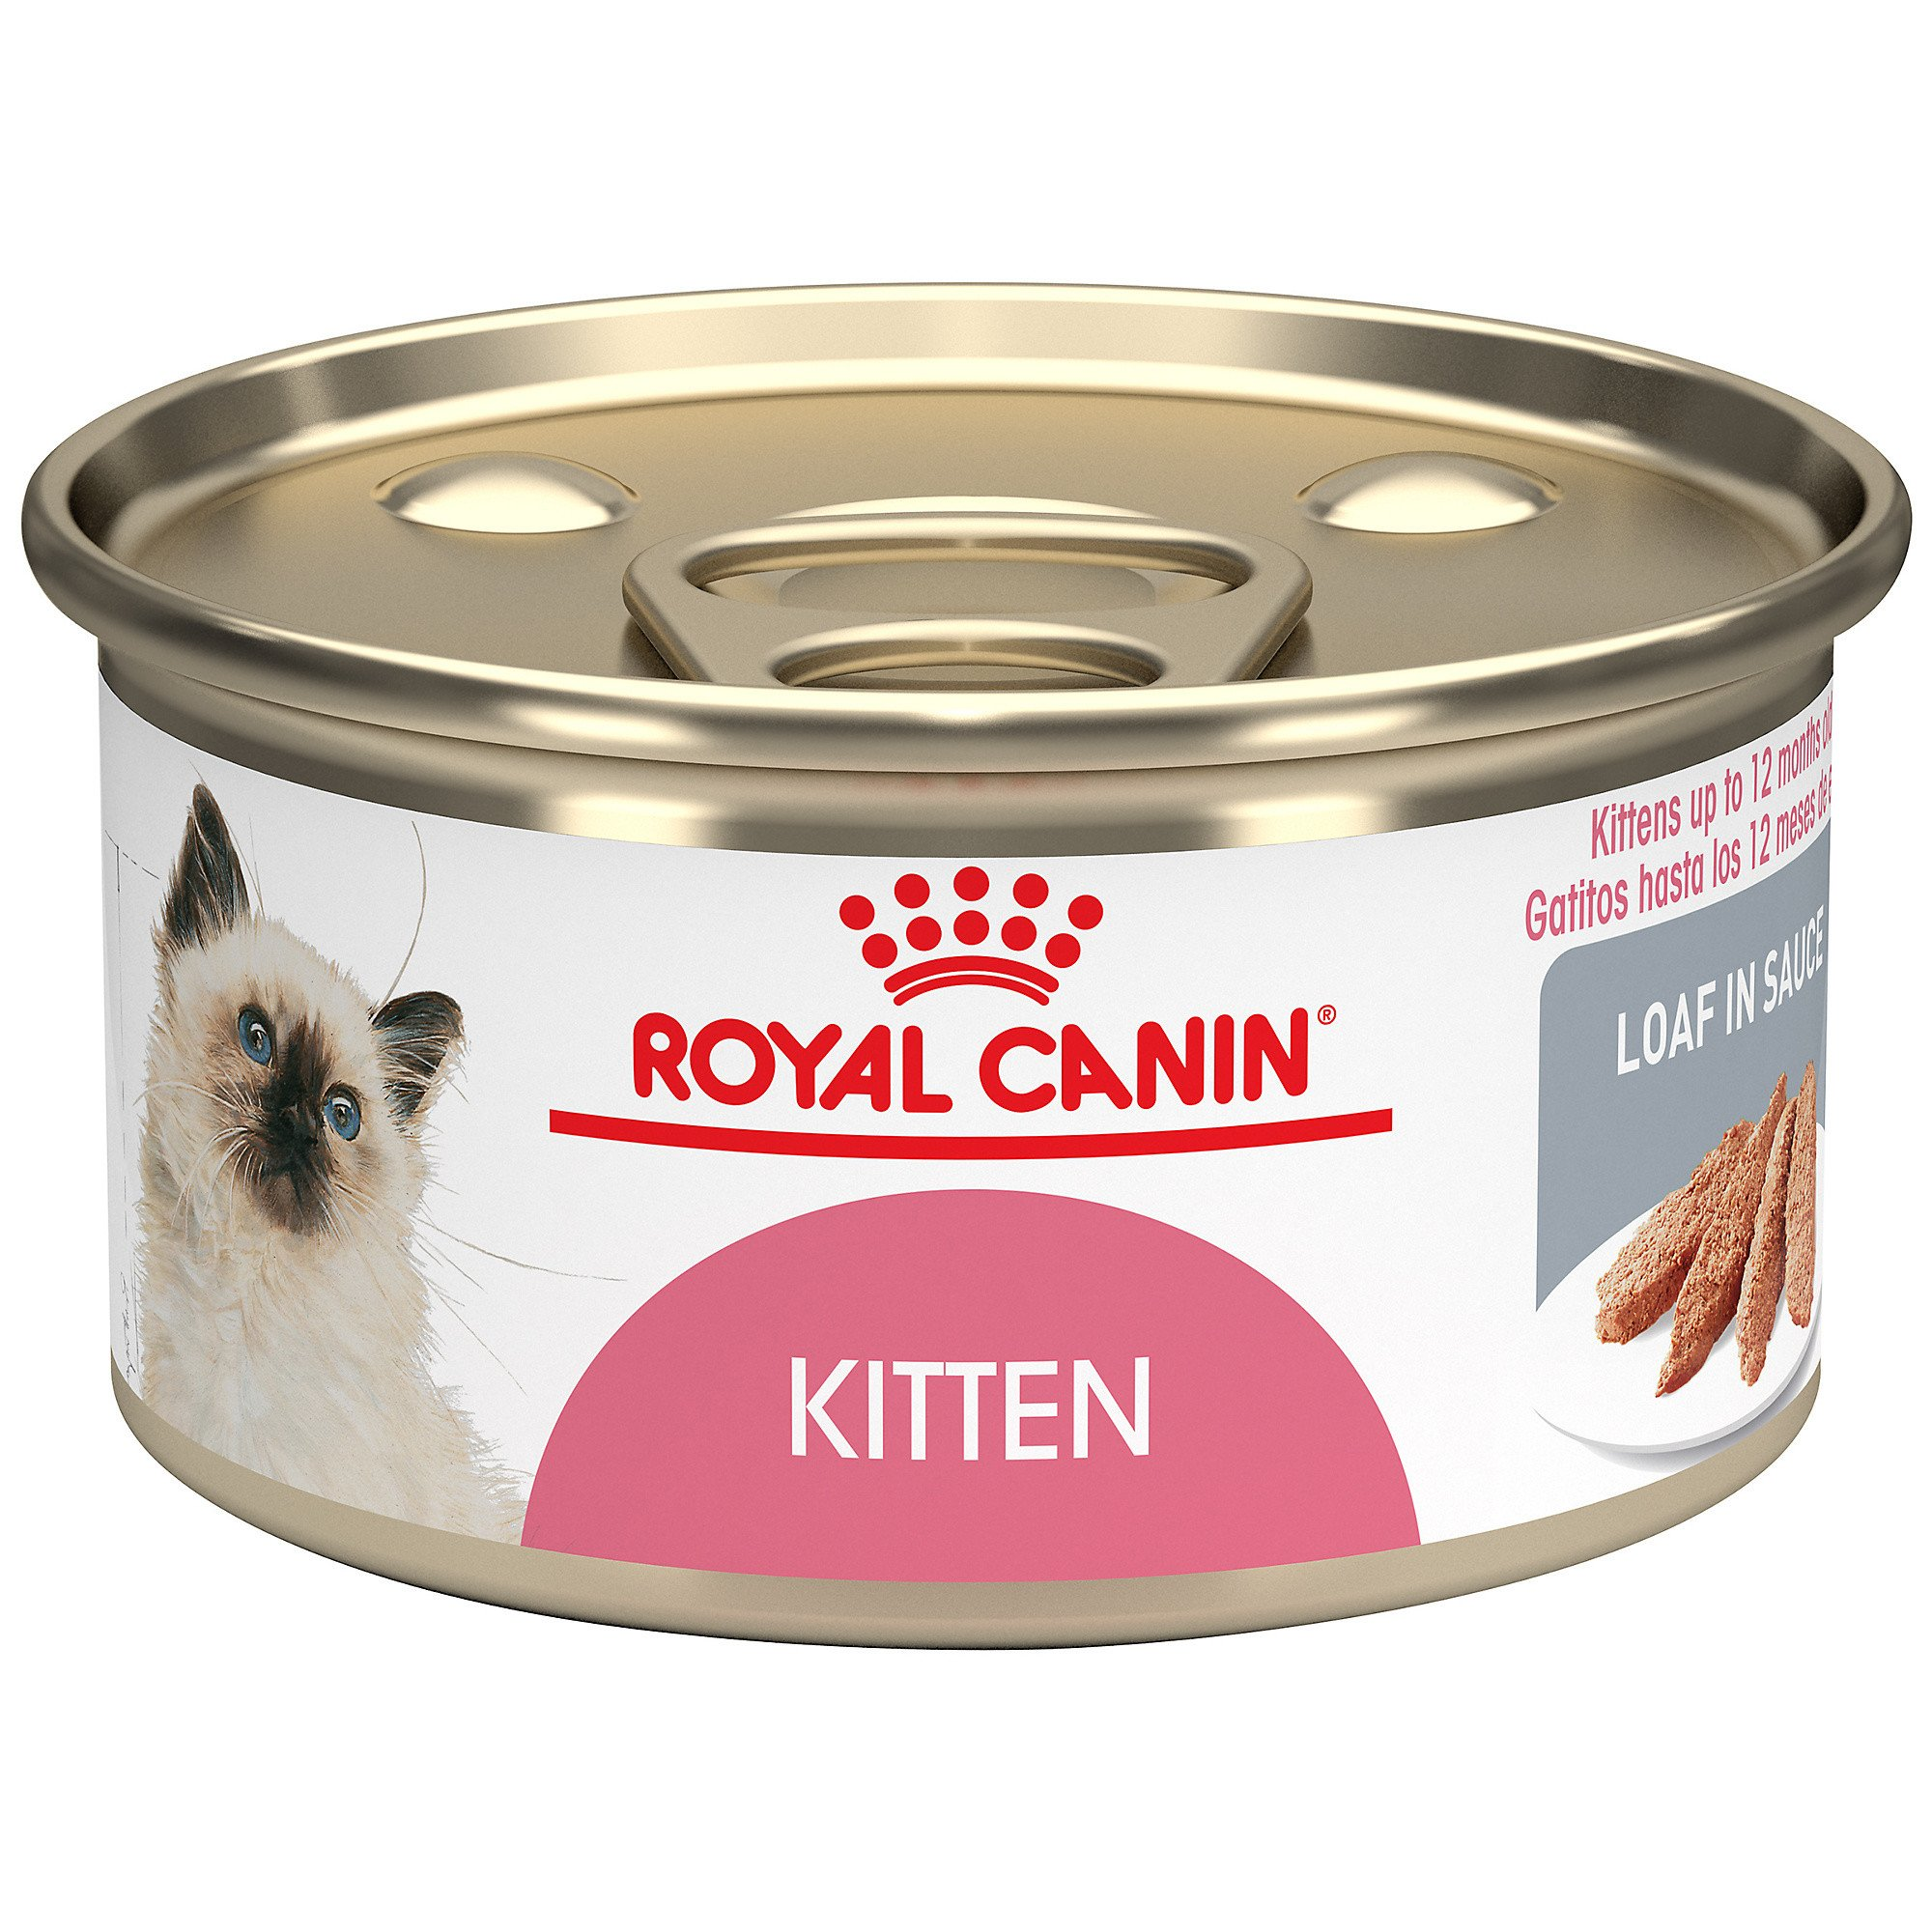 royal canin feline health nutrition kitten instinctive loaf in sauce canned cat food petco. Black Bedroom Furniture Sets. Home Design Ideas